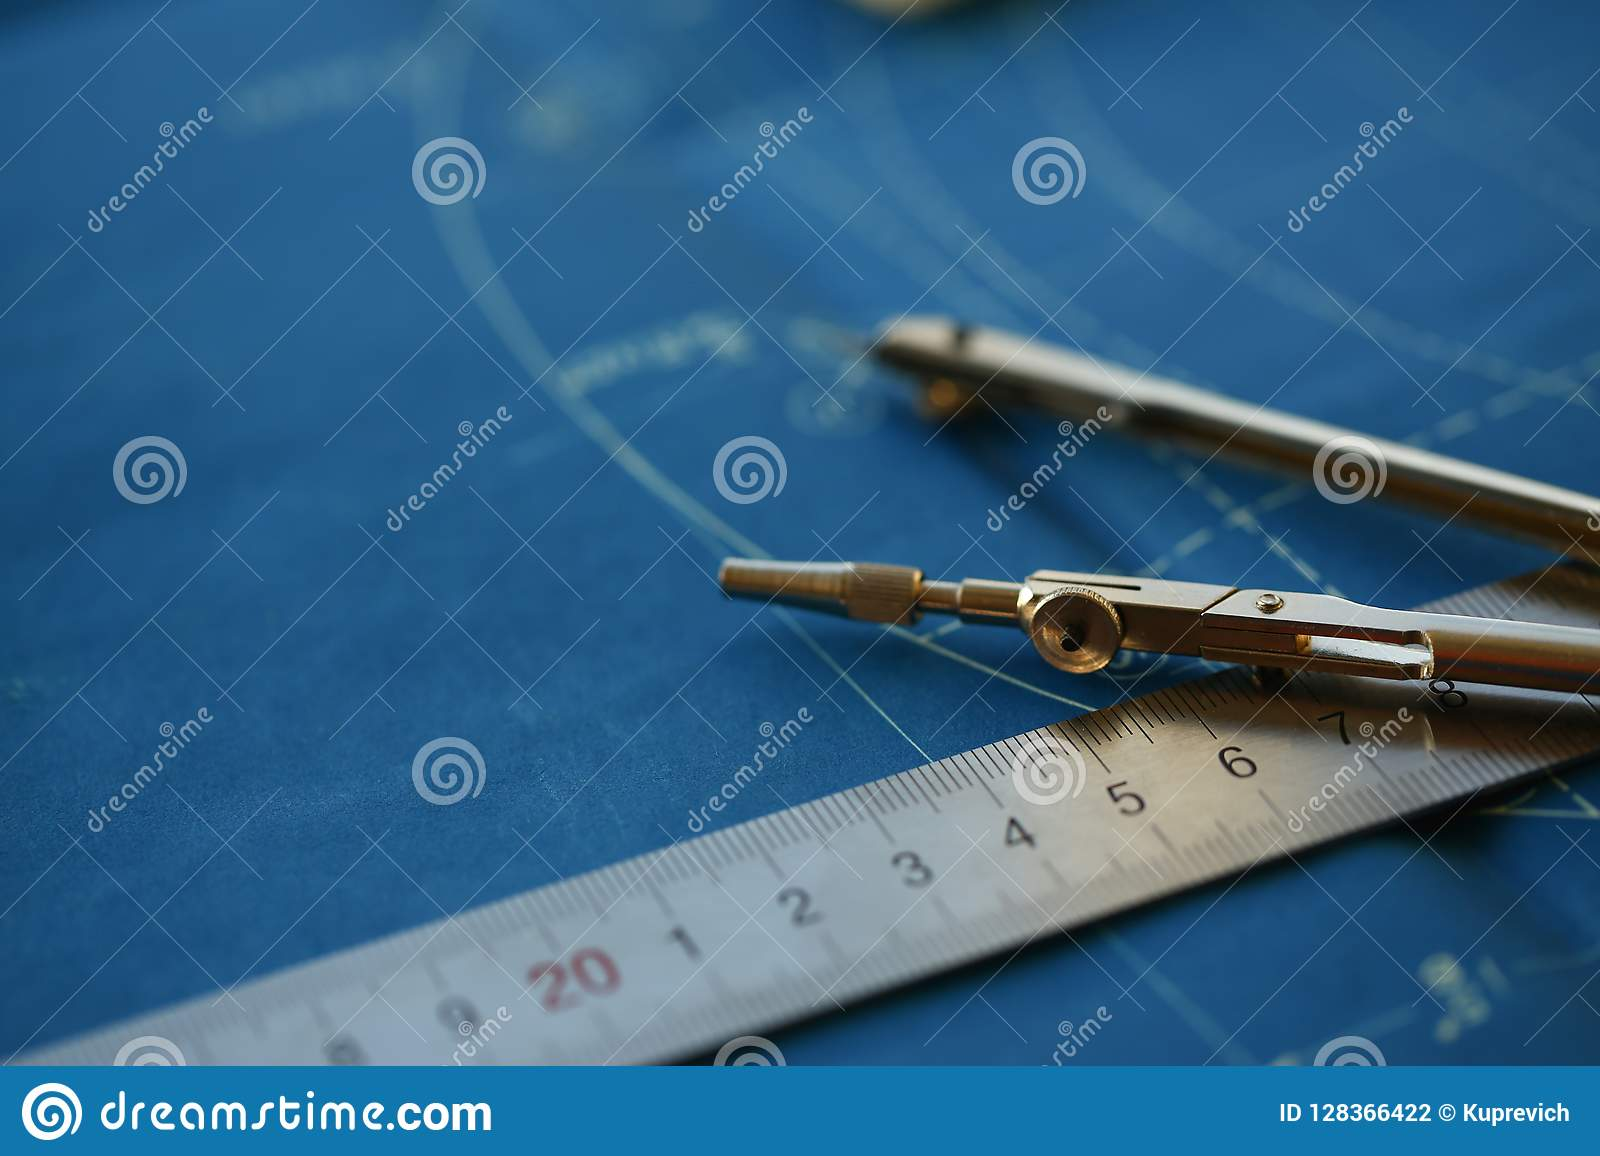 Drawing Engineer Education Design Stock Photo - Image of ...